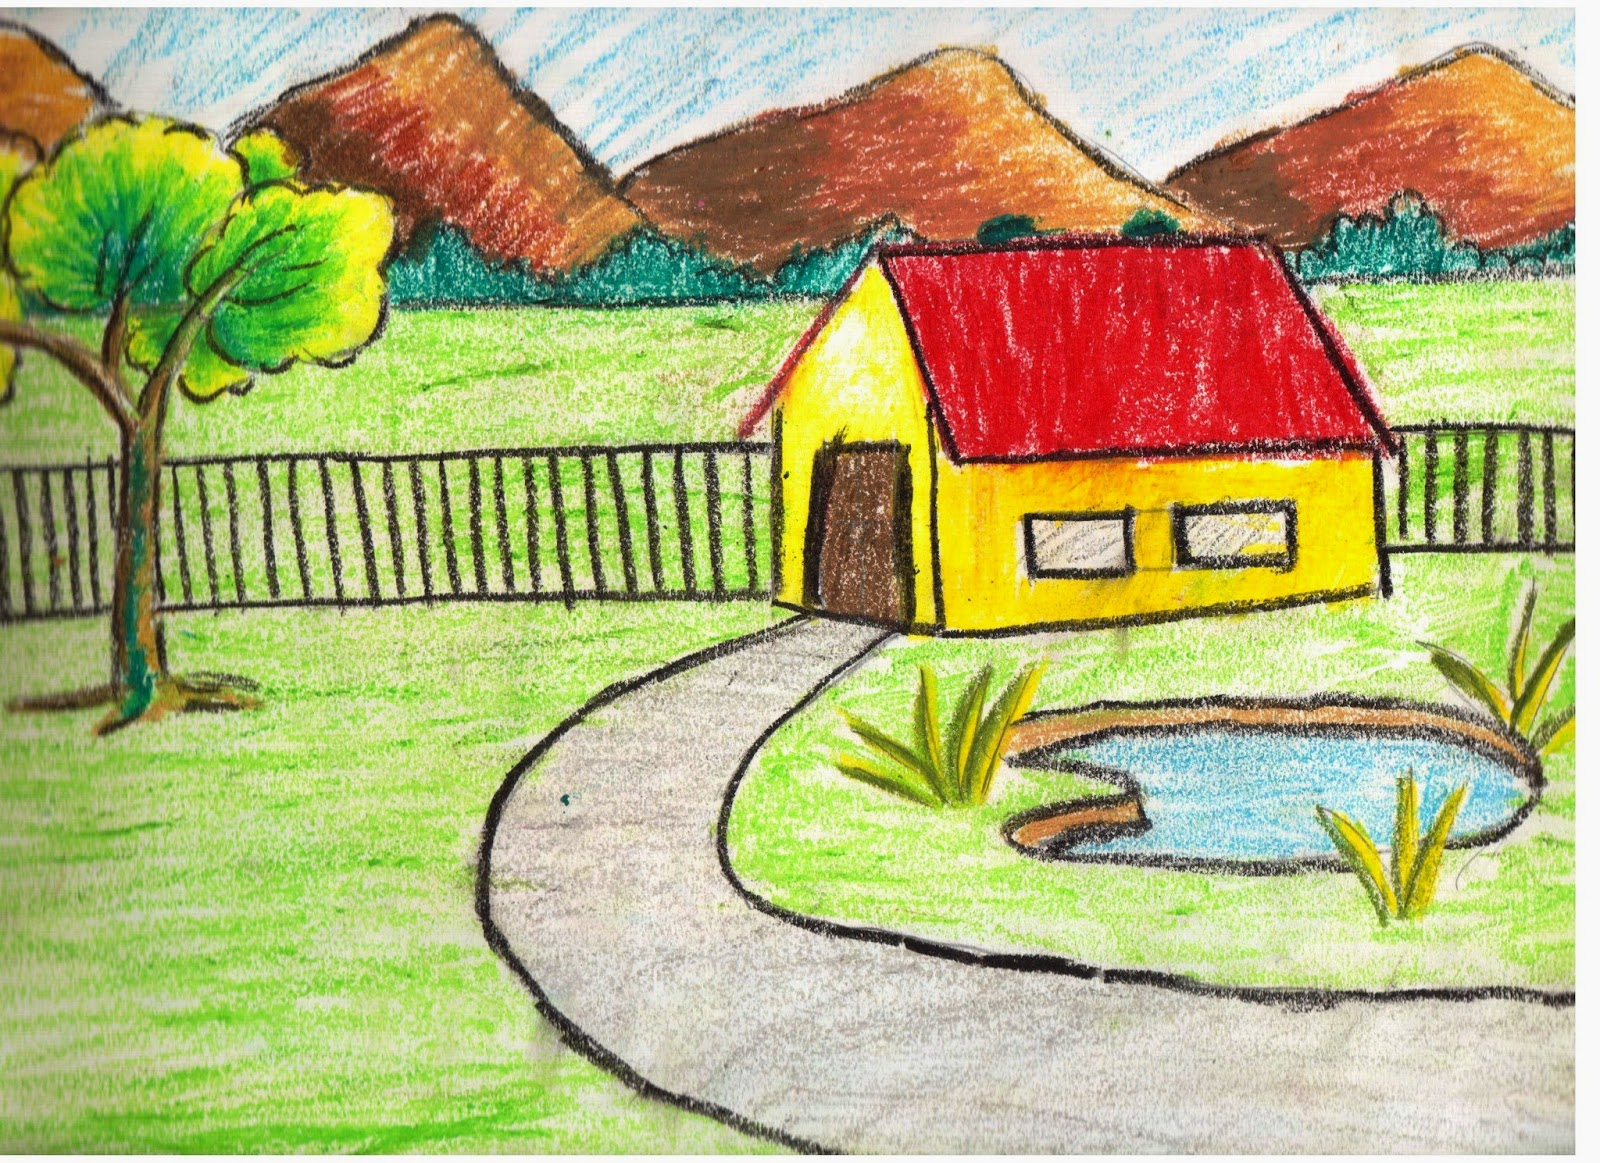 Drawn scenery class 4 Duttaditya18 Play children scenery drawings